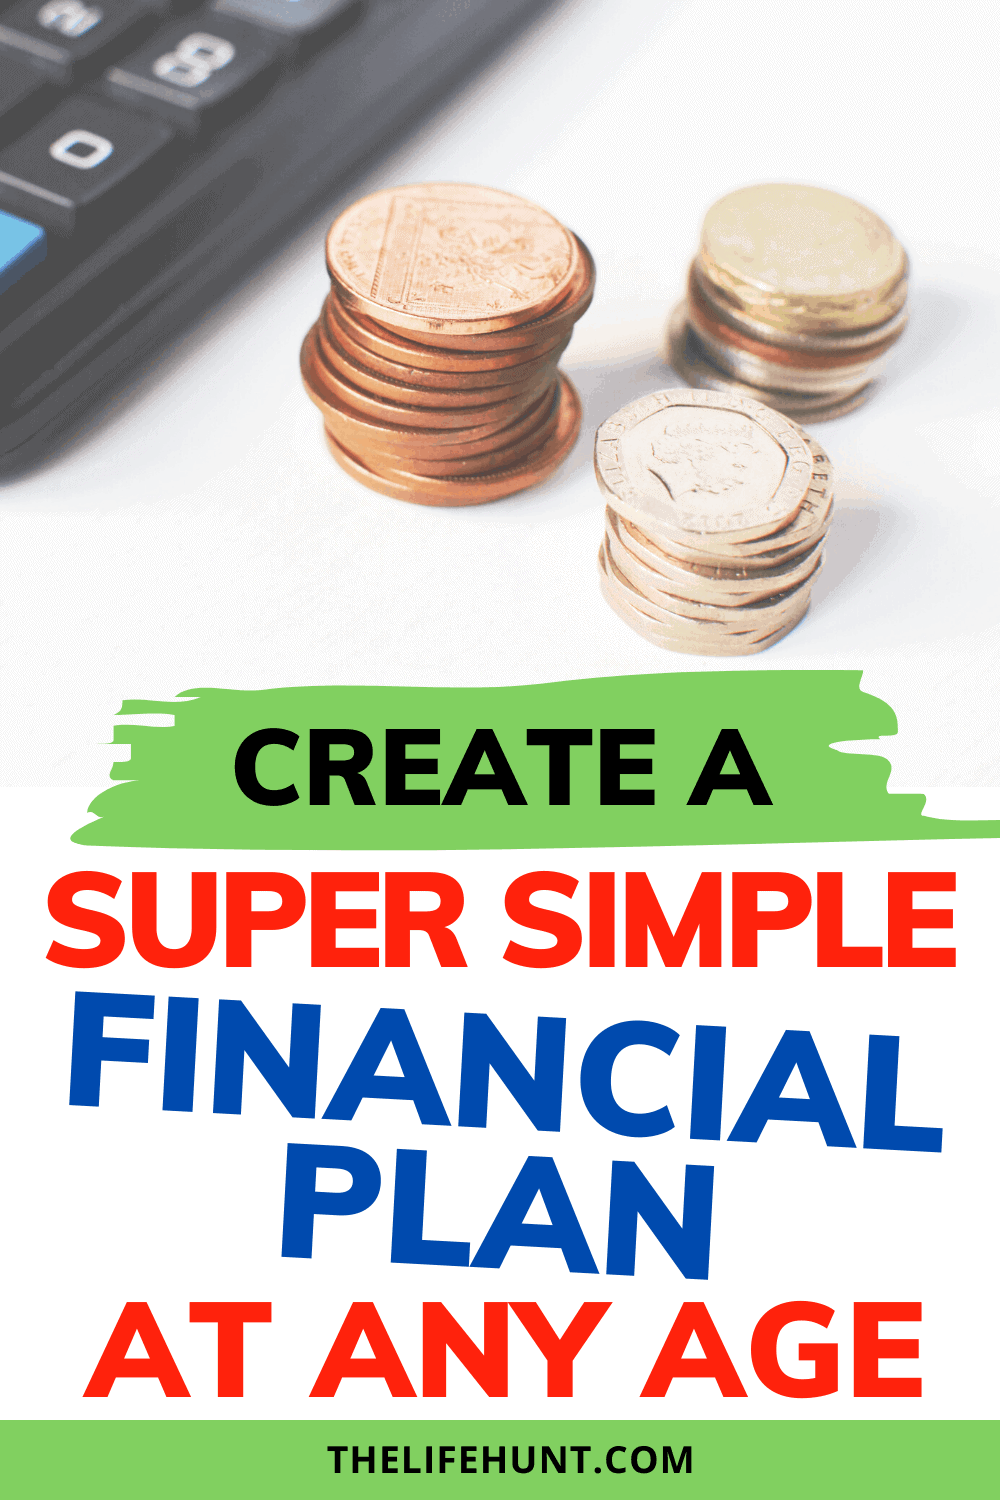 Simple financial plan with coins and a calculator